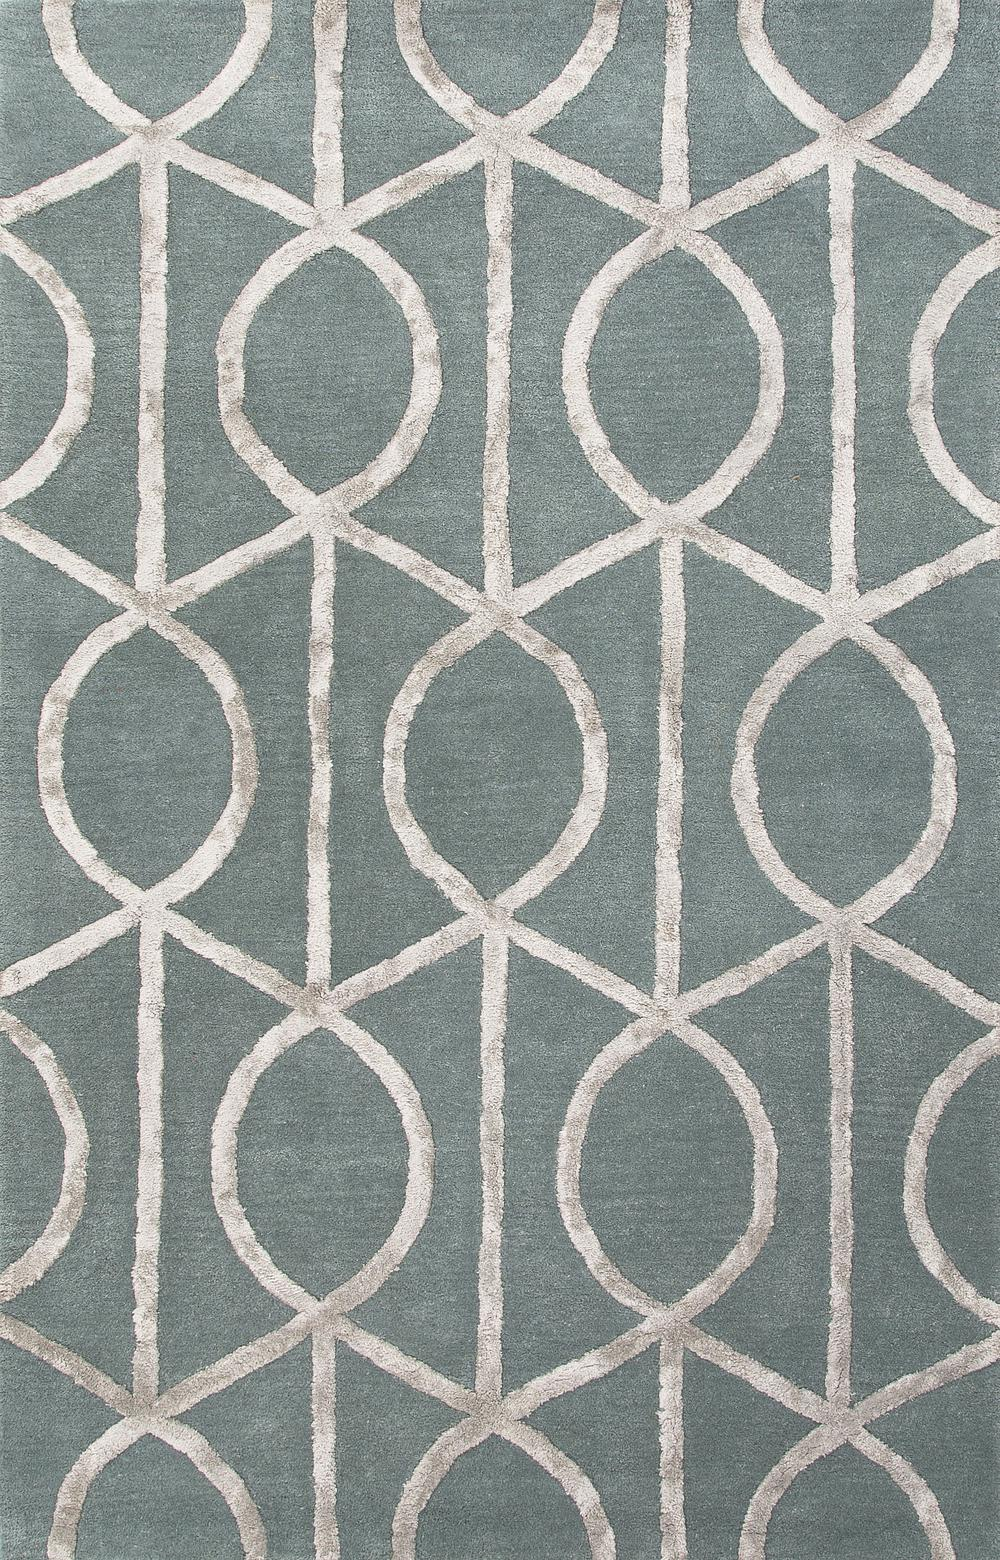 dadac3539a8 Jaipur City Seattle Blue Gray CT35 Area Rug